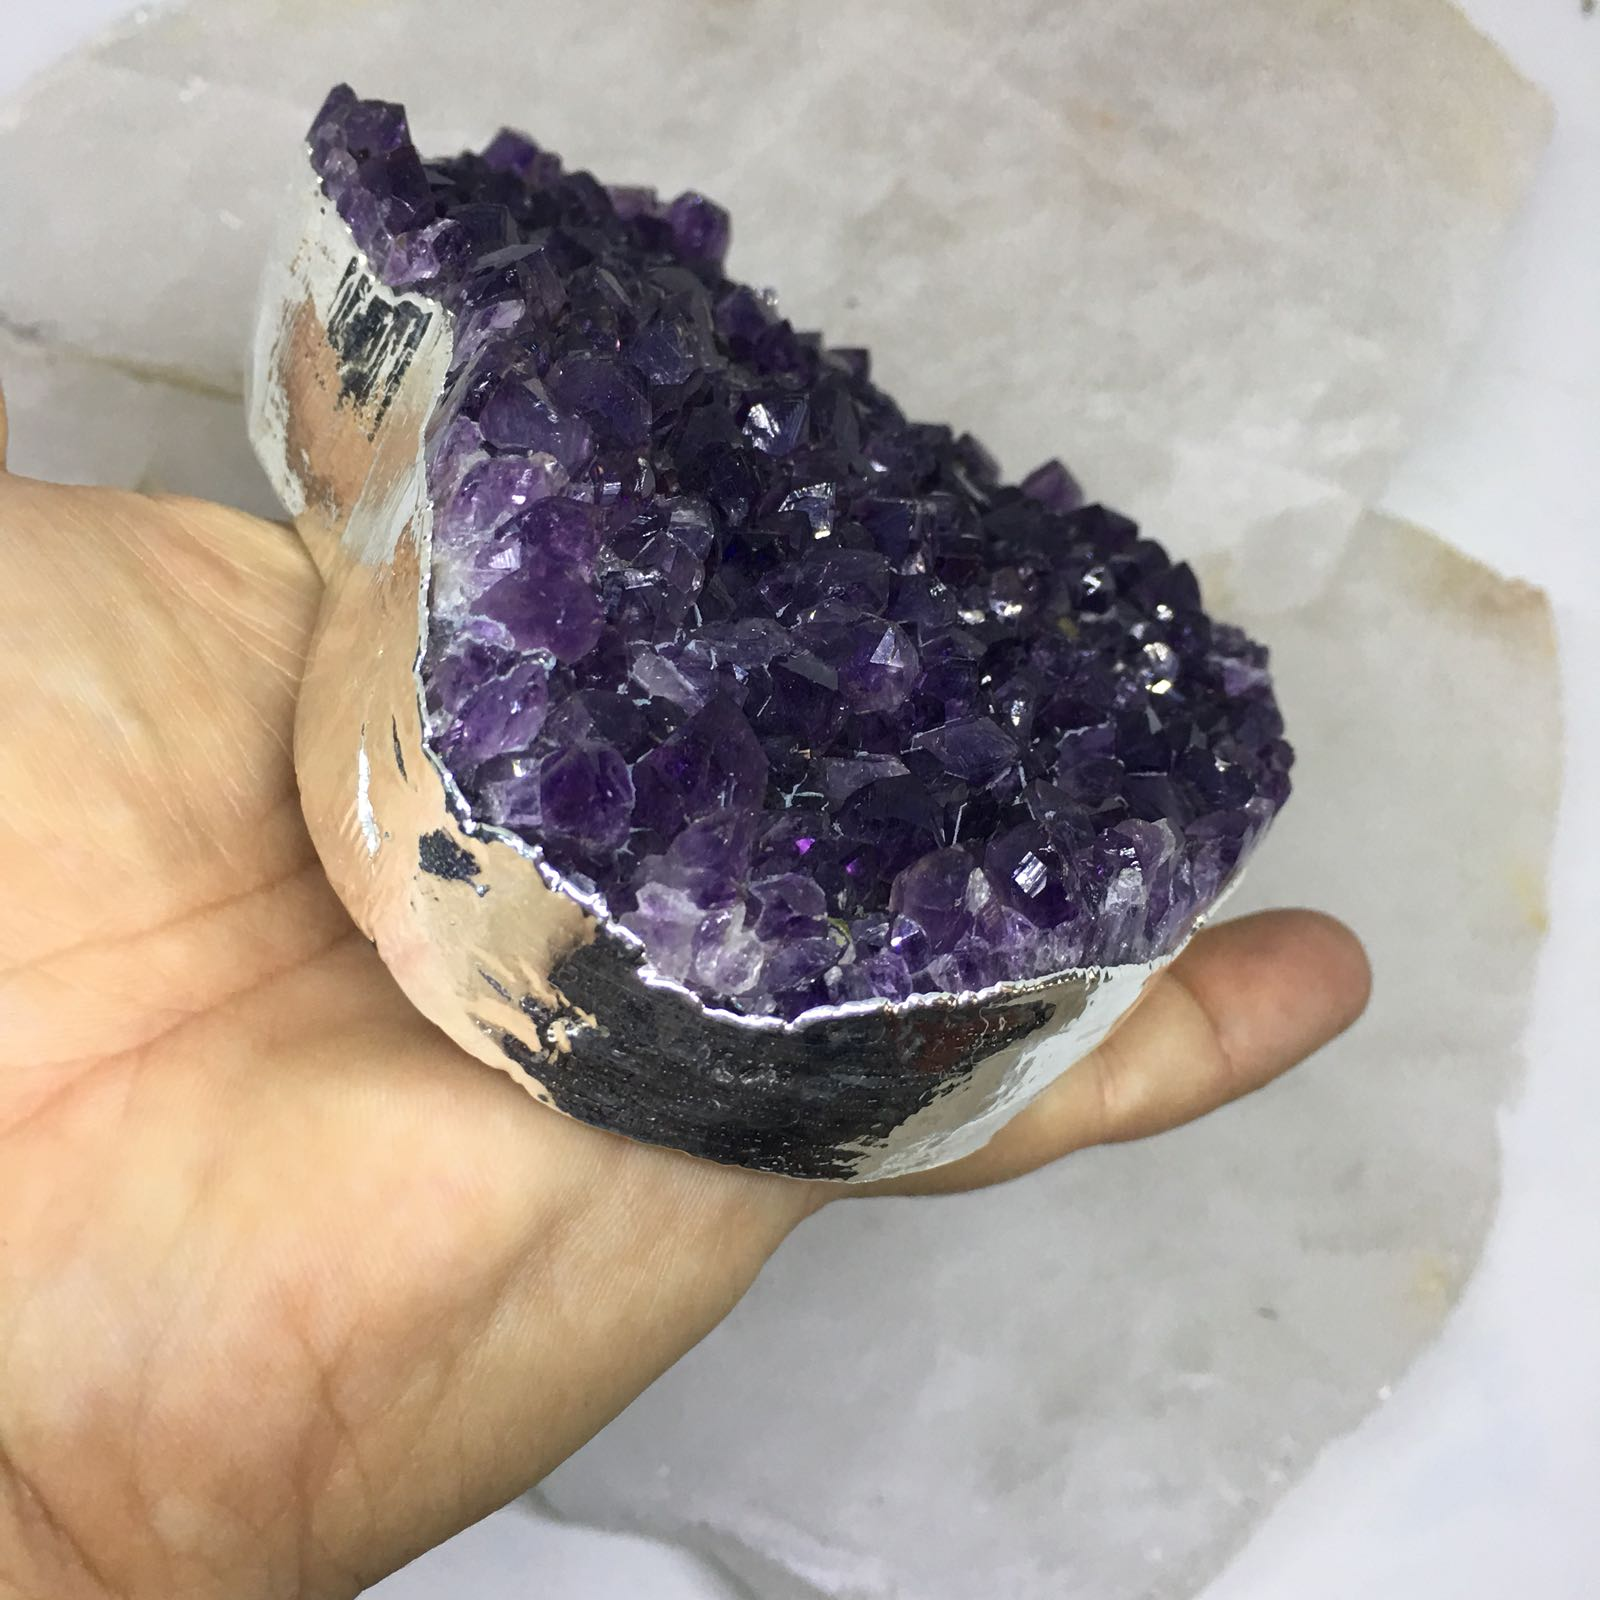 Stones from Uruguay - Silver Plated Purple Amethyst Druzy Heart for Decor & Home